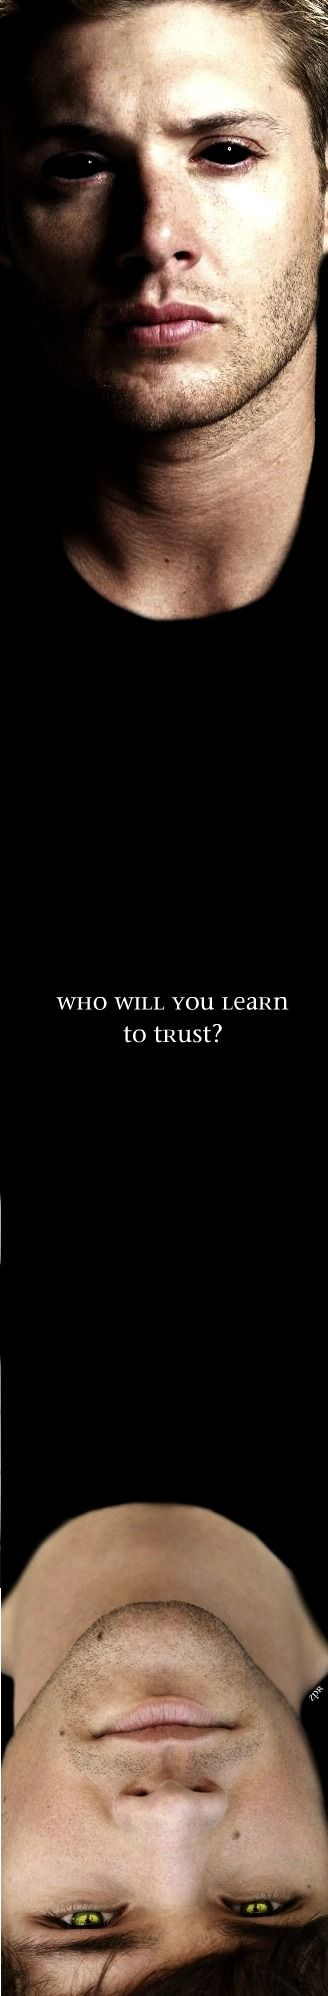 Who Will You Learn to Trust? by ZombiePlatypusRush.deviantart.com on @deviantART